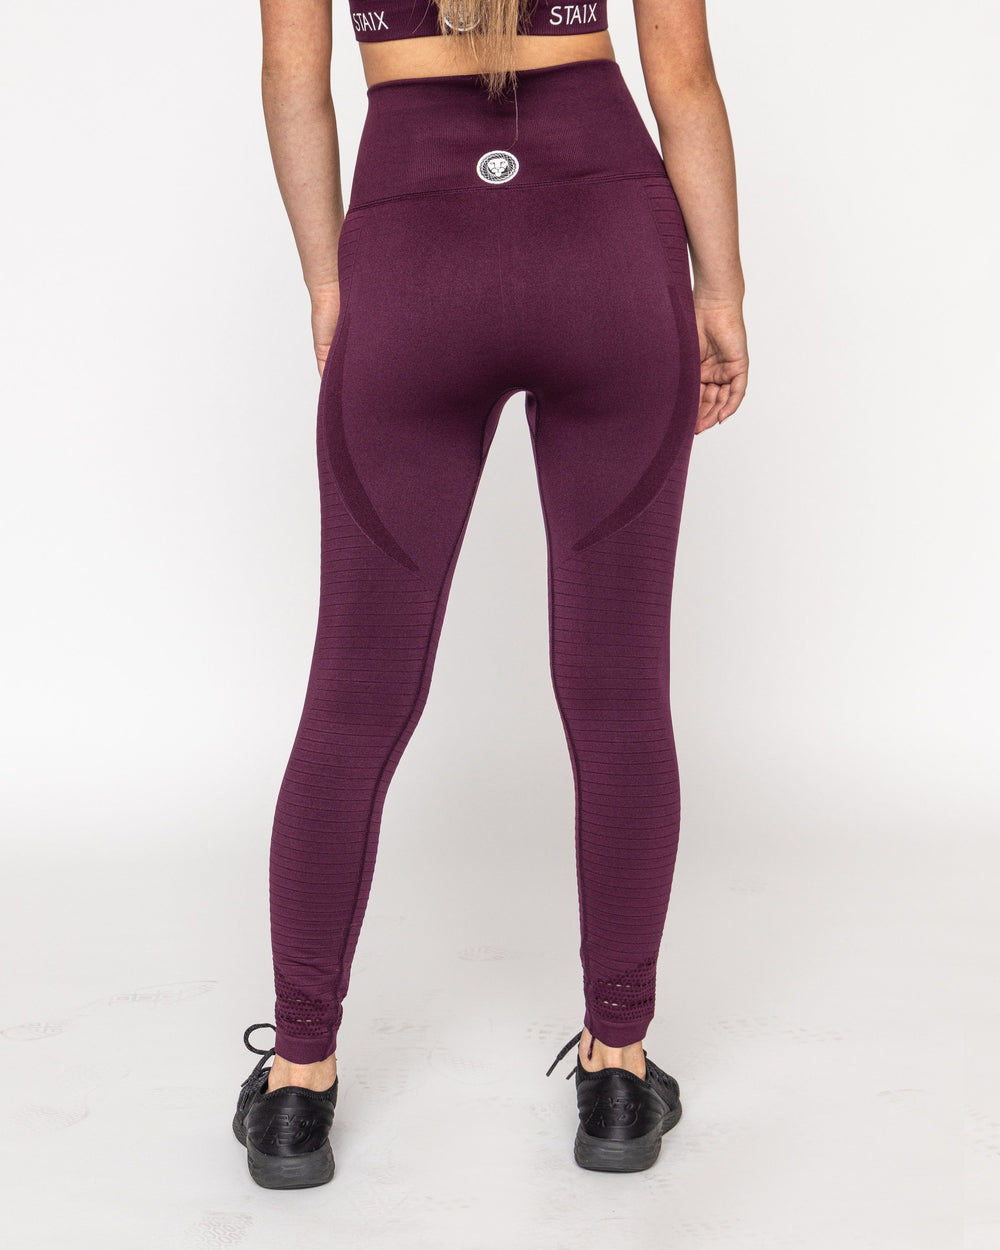 FORM LEGGINGS WOMEN'S LEGGINGS STAIX